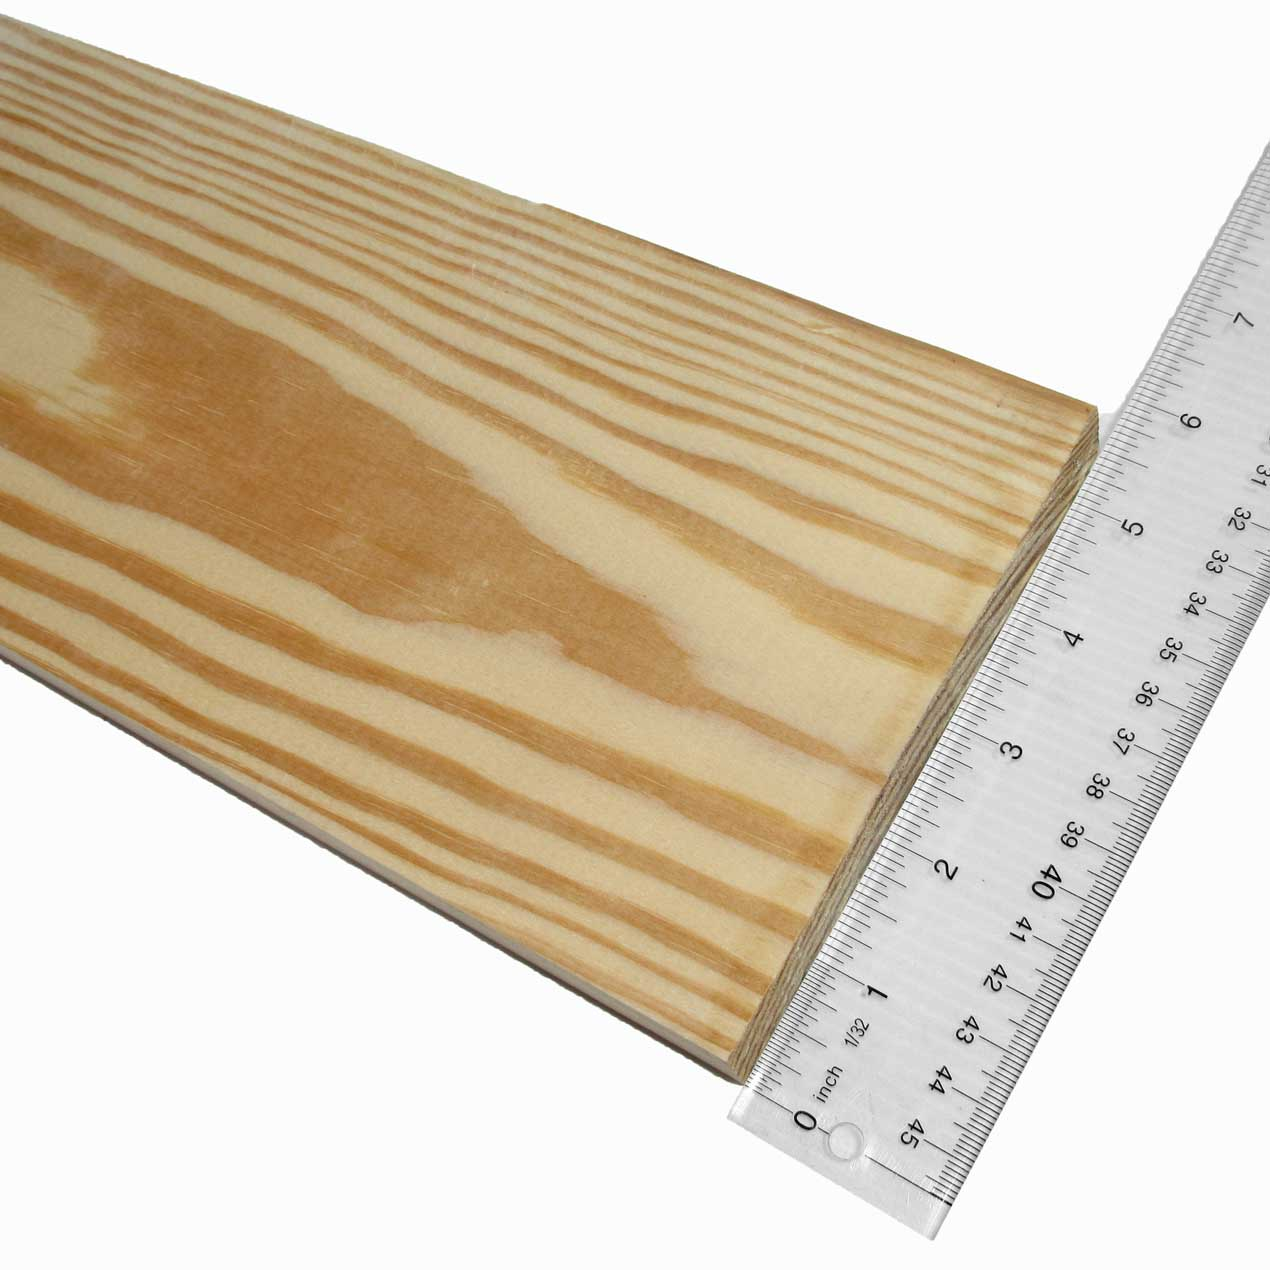 1x6 Clear Yellow Pine Lumber S4s Capitol City Lumber